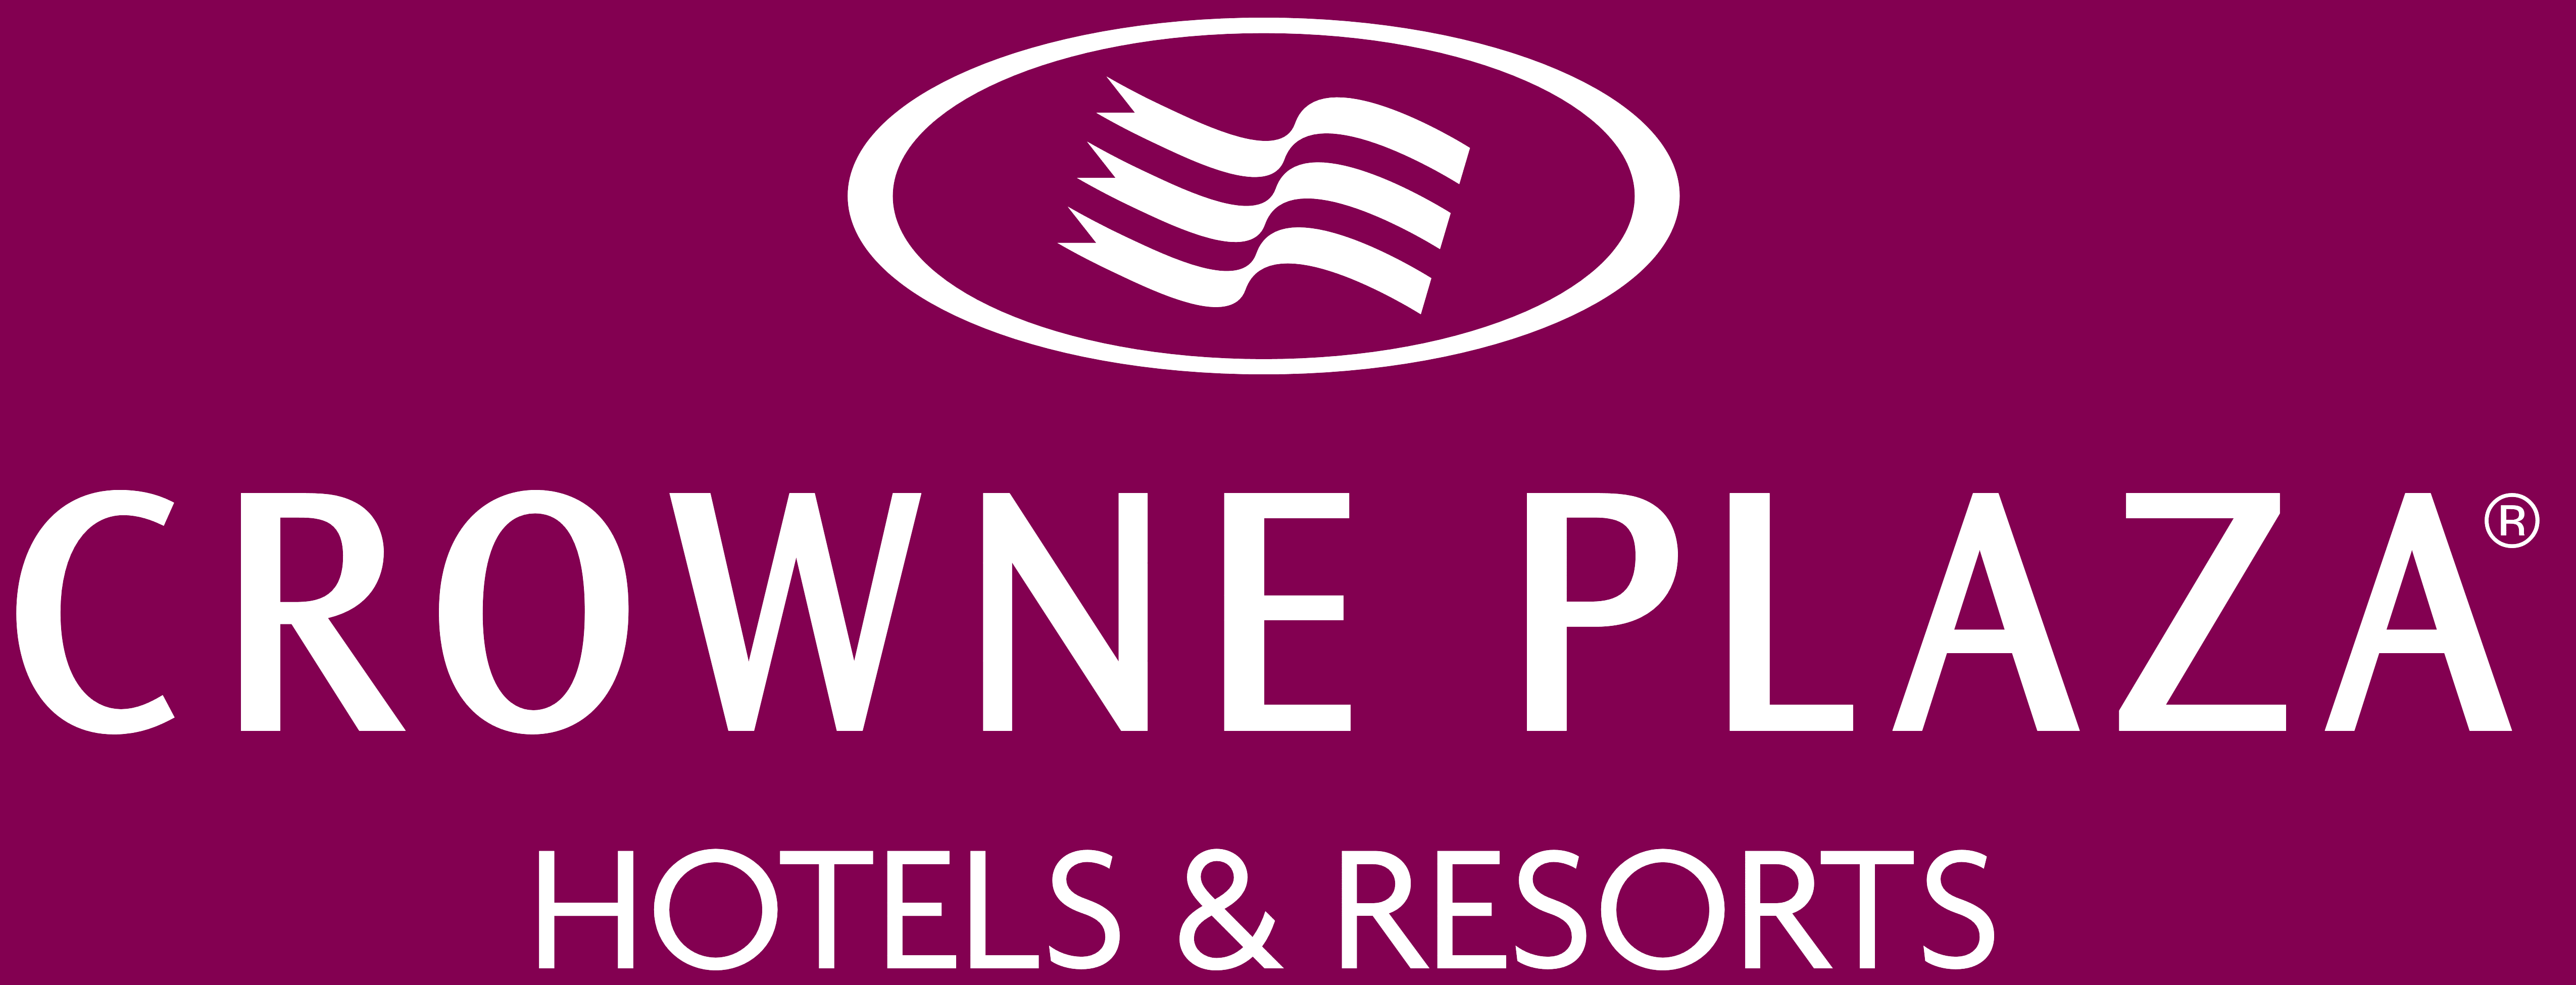 Crowne Plaza  Logos Download. Fundraiser Signs. Stickers Bestellen. Pneumococcal Pneumonia Signs. Avalanche Chevy Decals. Front Decals. Posterior Signs Of Stroke. Princess Signs. Invitation Inscription Lettering